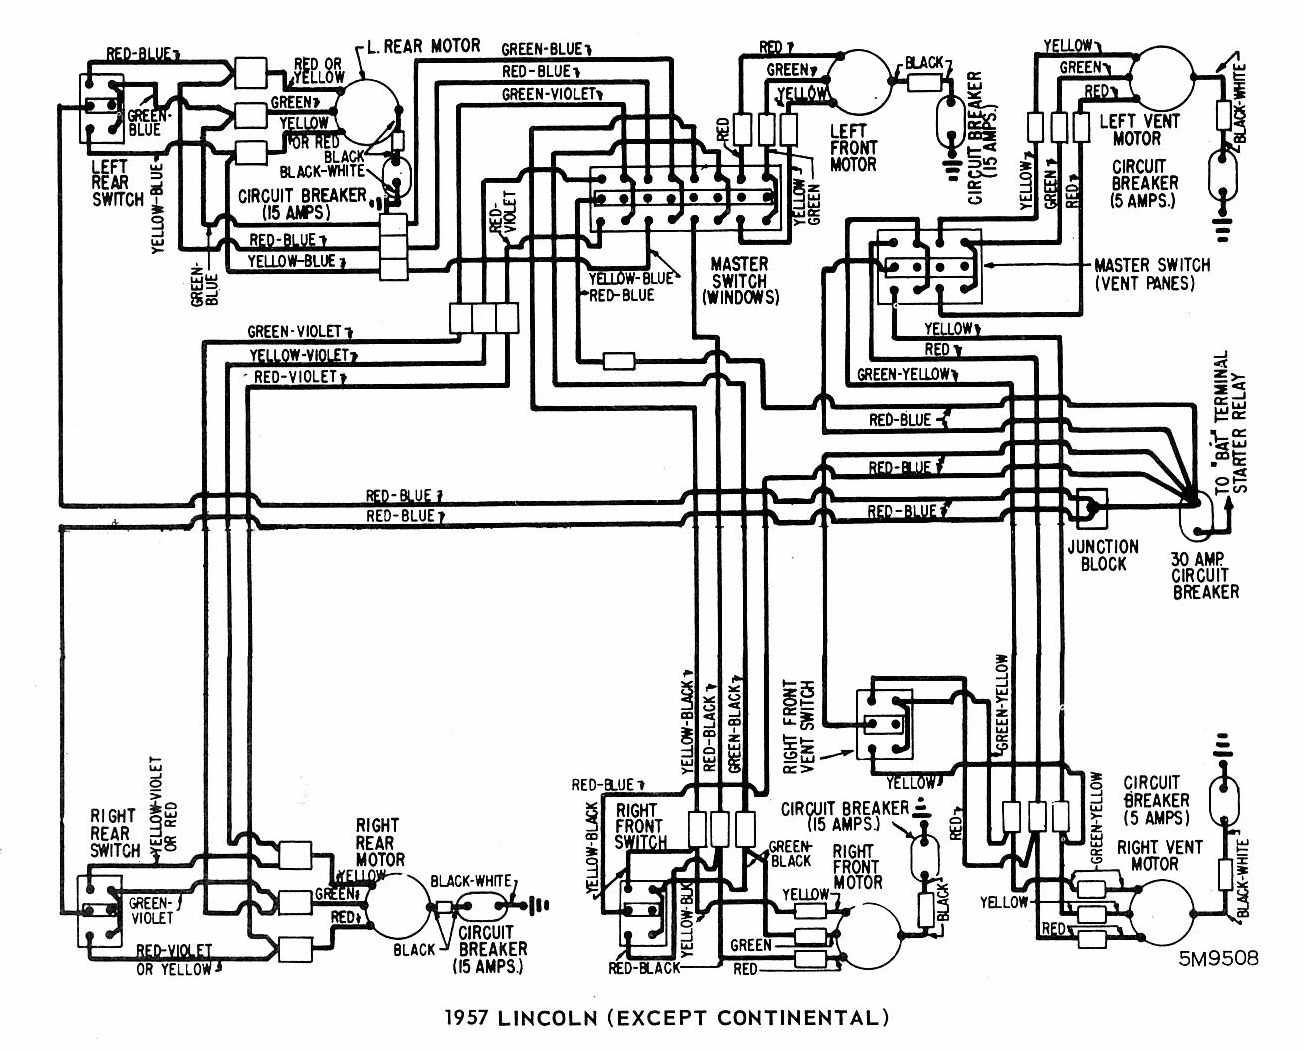 94 Lincoln Wiring Diagram on 1994 chevy astro van fuse diagram